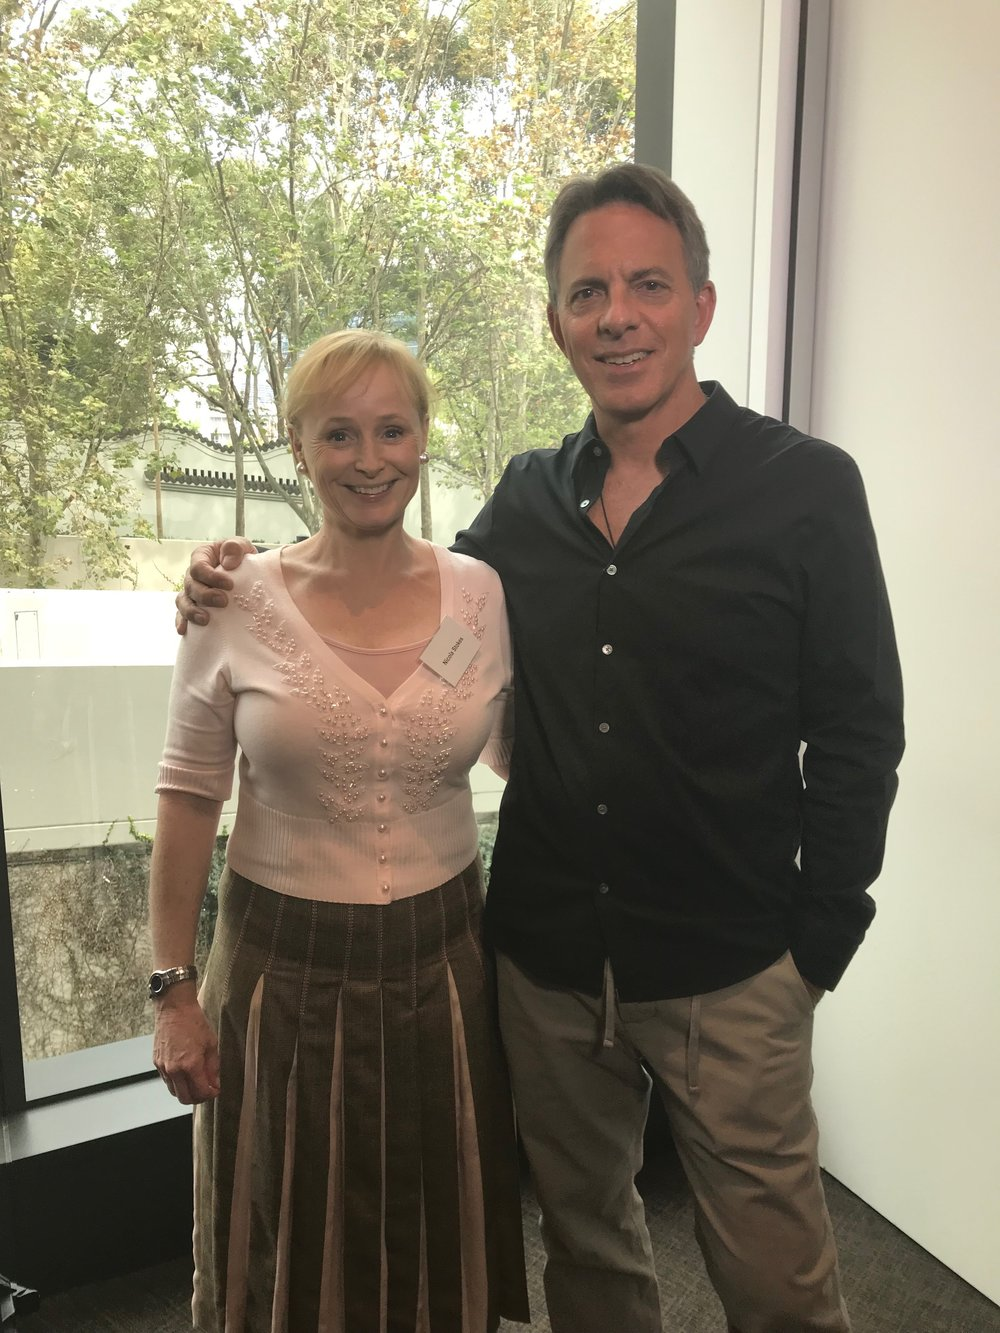 Dan with Nicola Stokes, CEO of the Sydney Children's Hospital Foundation